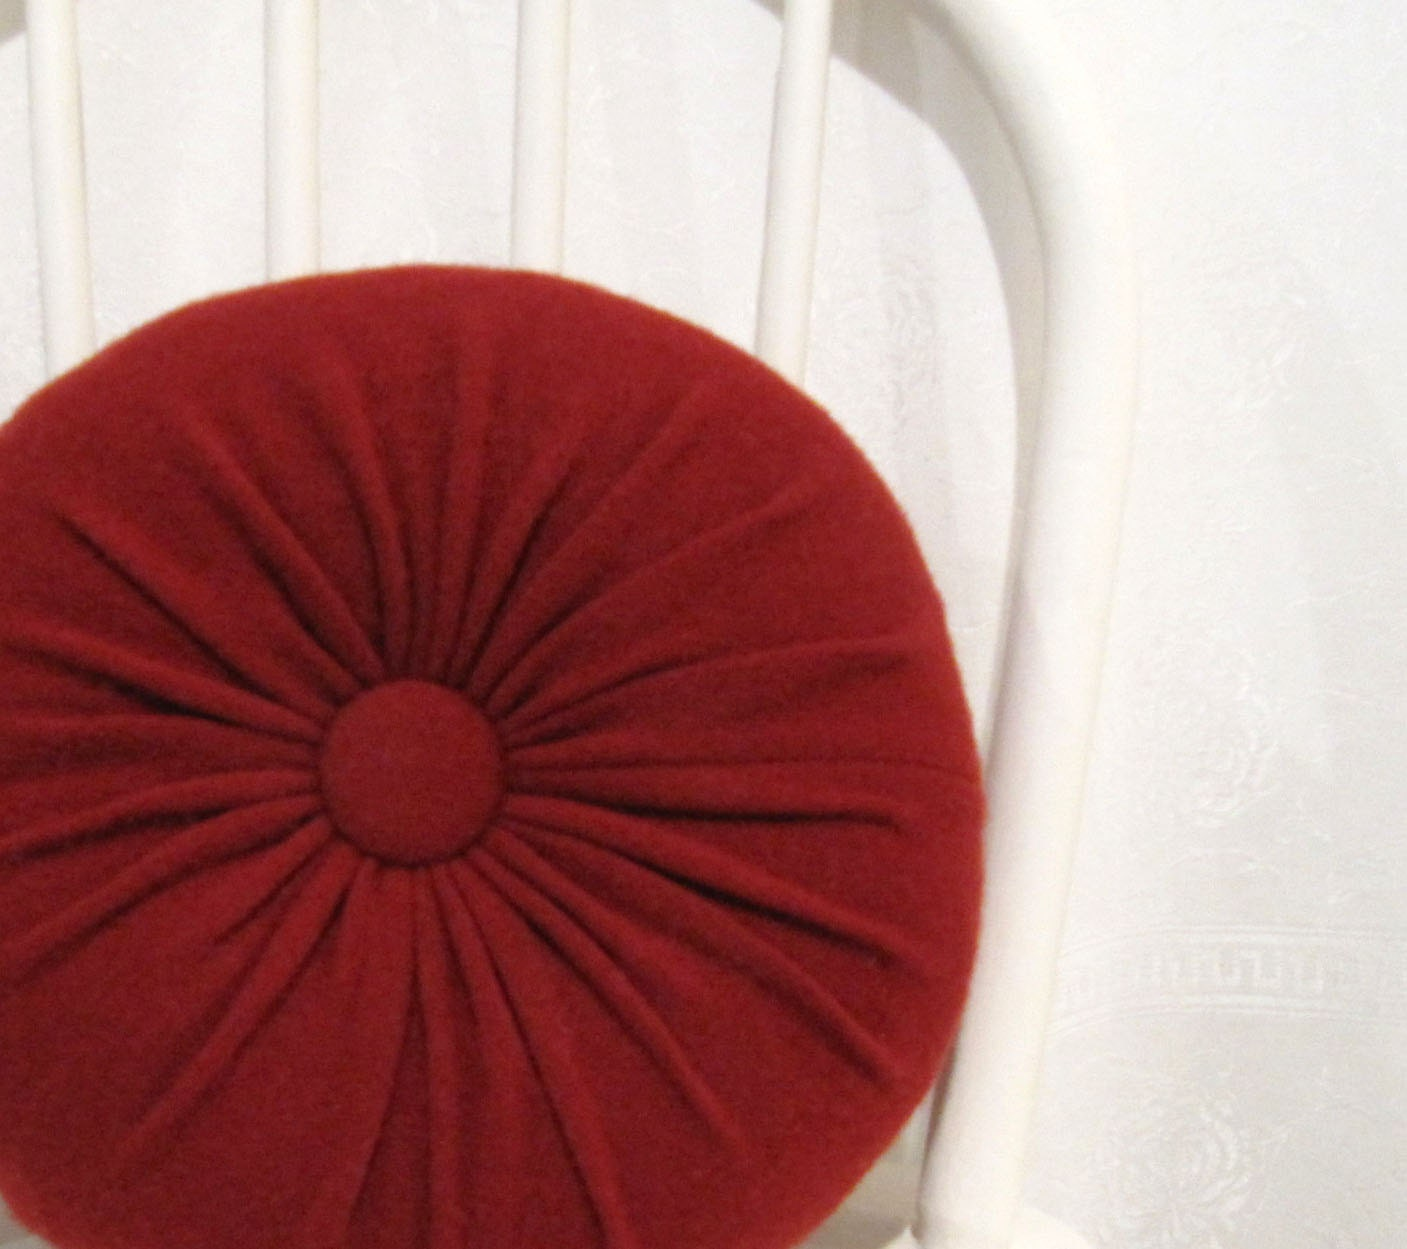 Round Throw Pillows For Couch : Red Cashmere Round Throw Pillow / Accent Decorative Couch